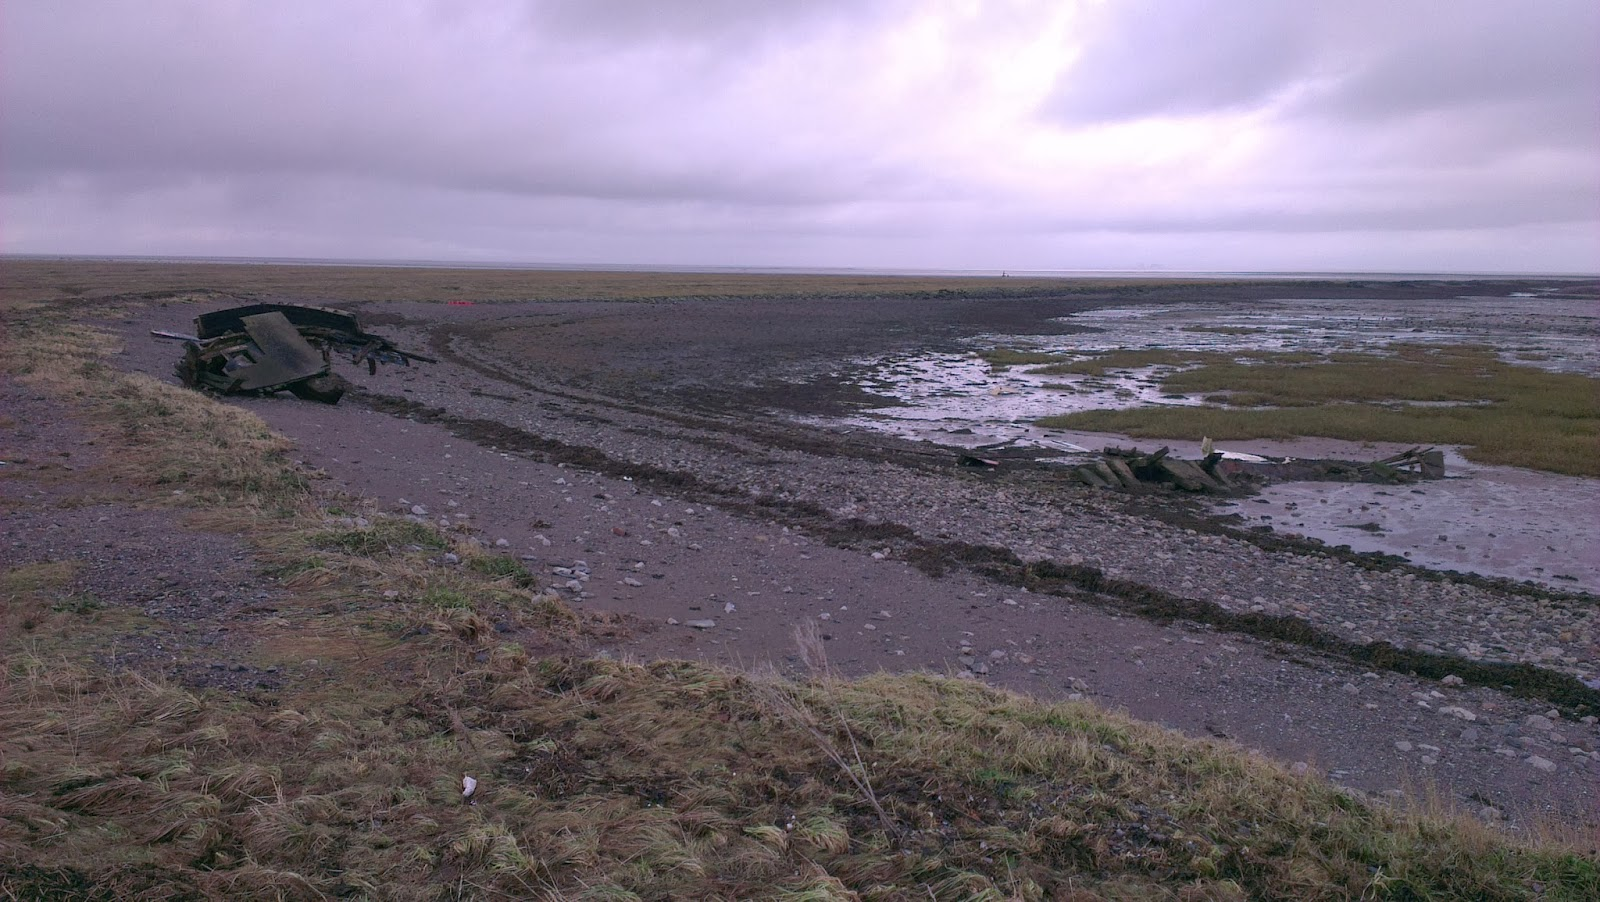 The southernmost point of the Furness Peninsula in Cumbria